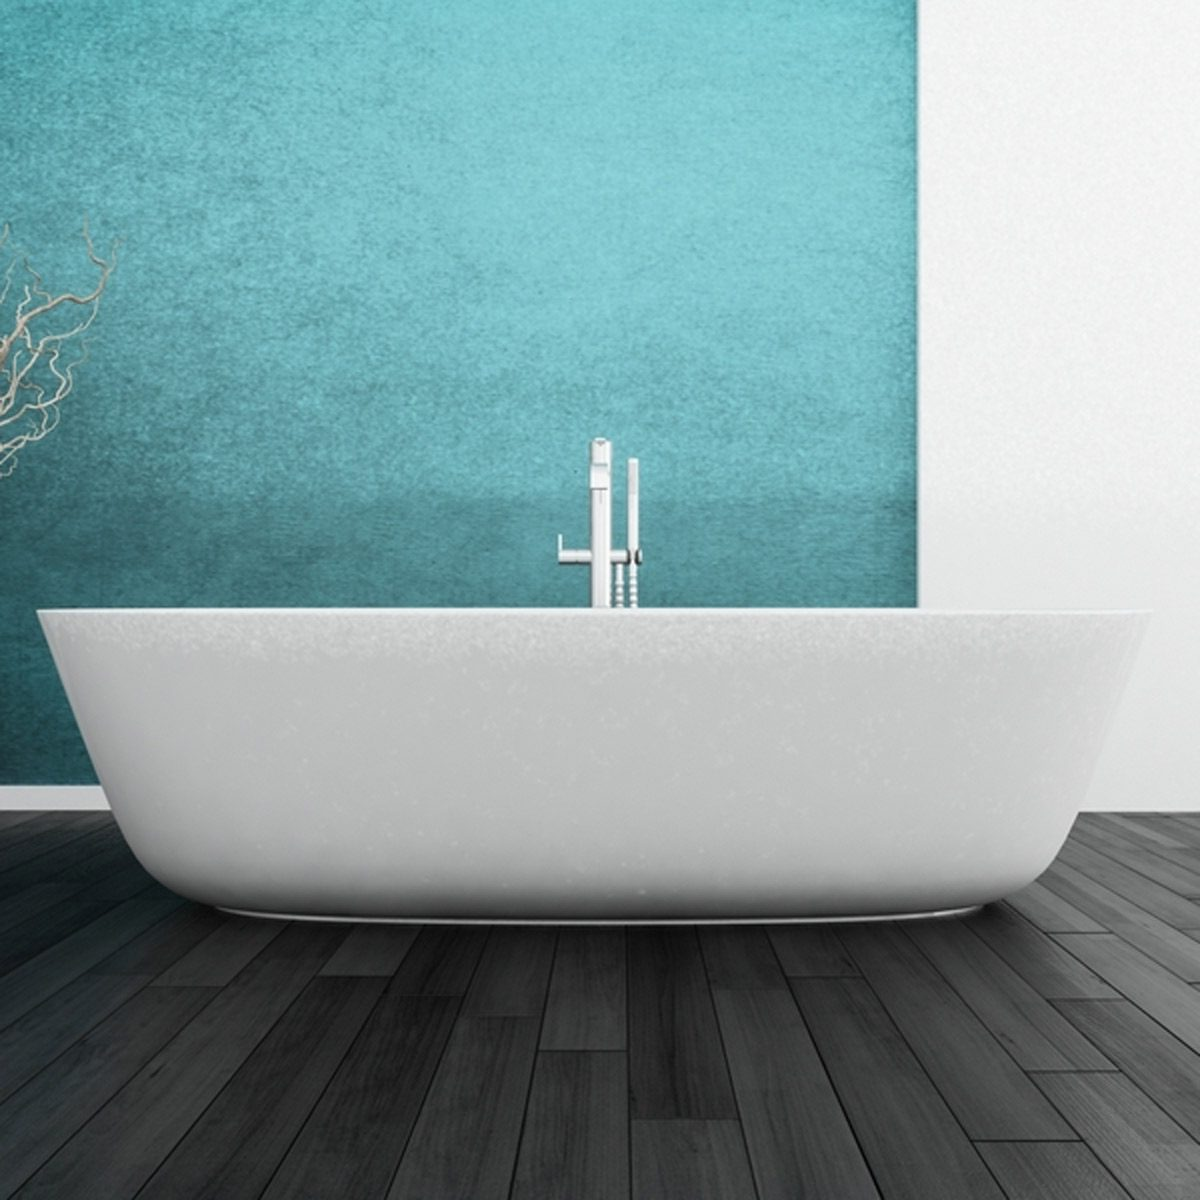 How to permanently anchor a bathroom towel bar family handyman 12 bathroom color trends to try today dailygadgetfo Choice Image